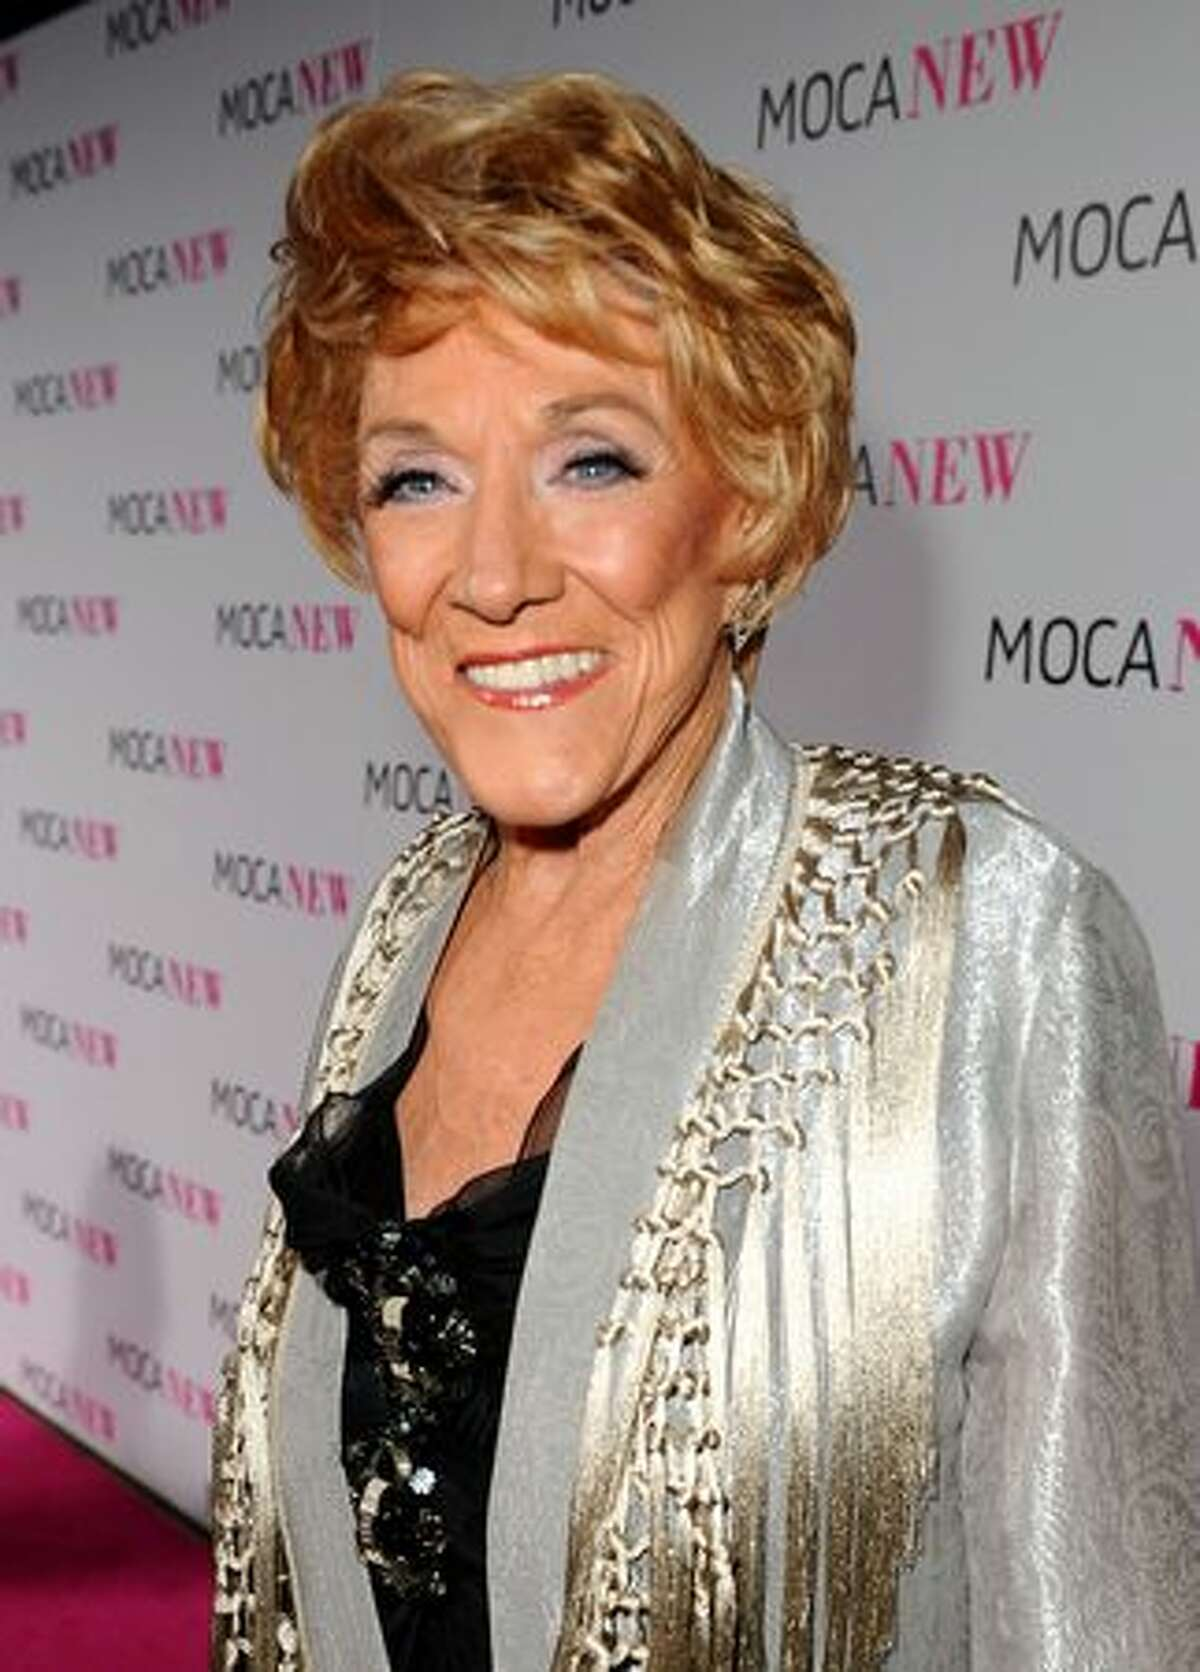 Actress Jeanne Cooper arrives at the MOCA NEW 30th anniversary gala held at MOCA on Saturday in Los Angeles, California.